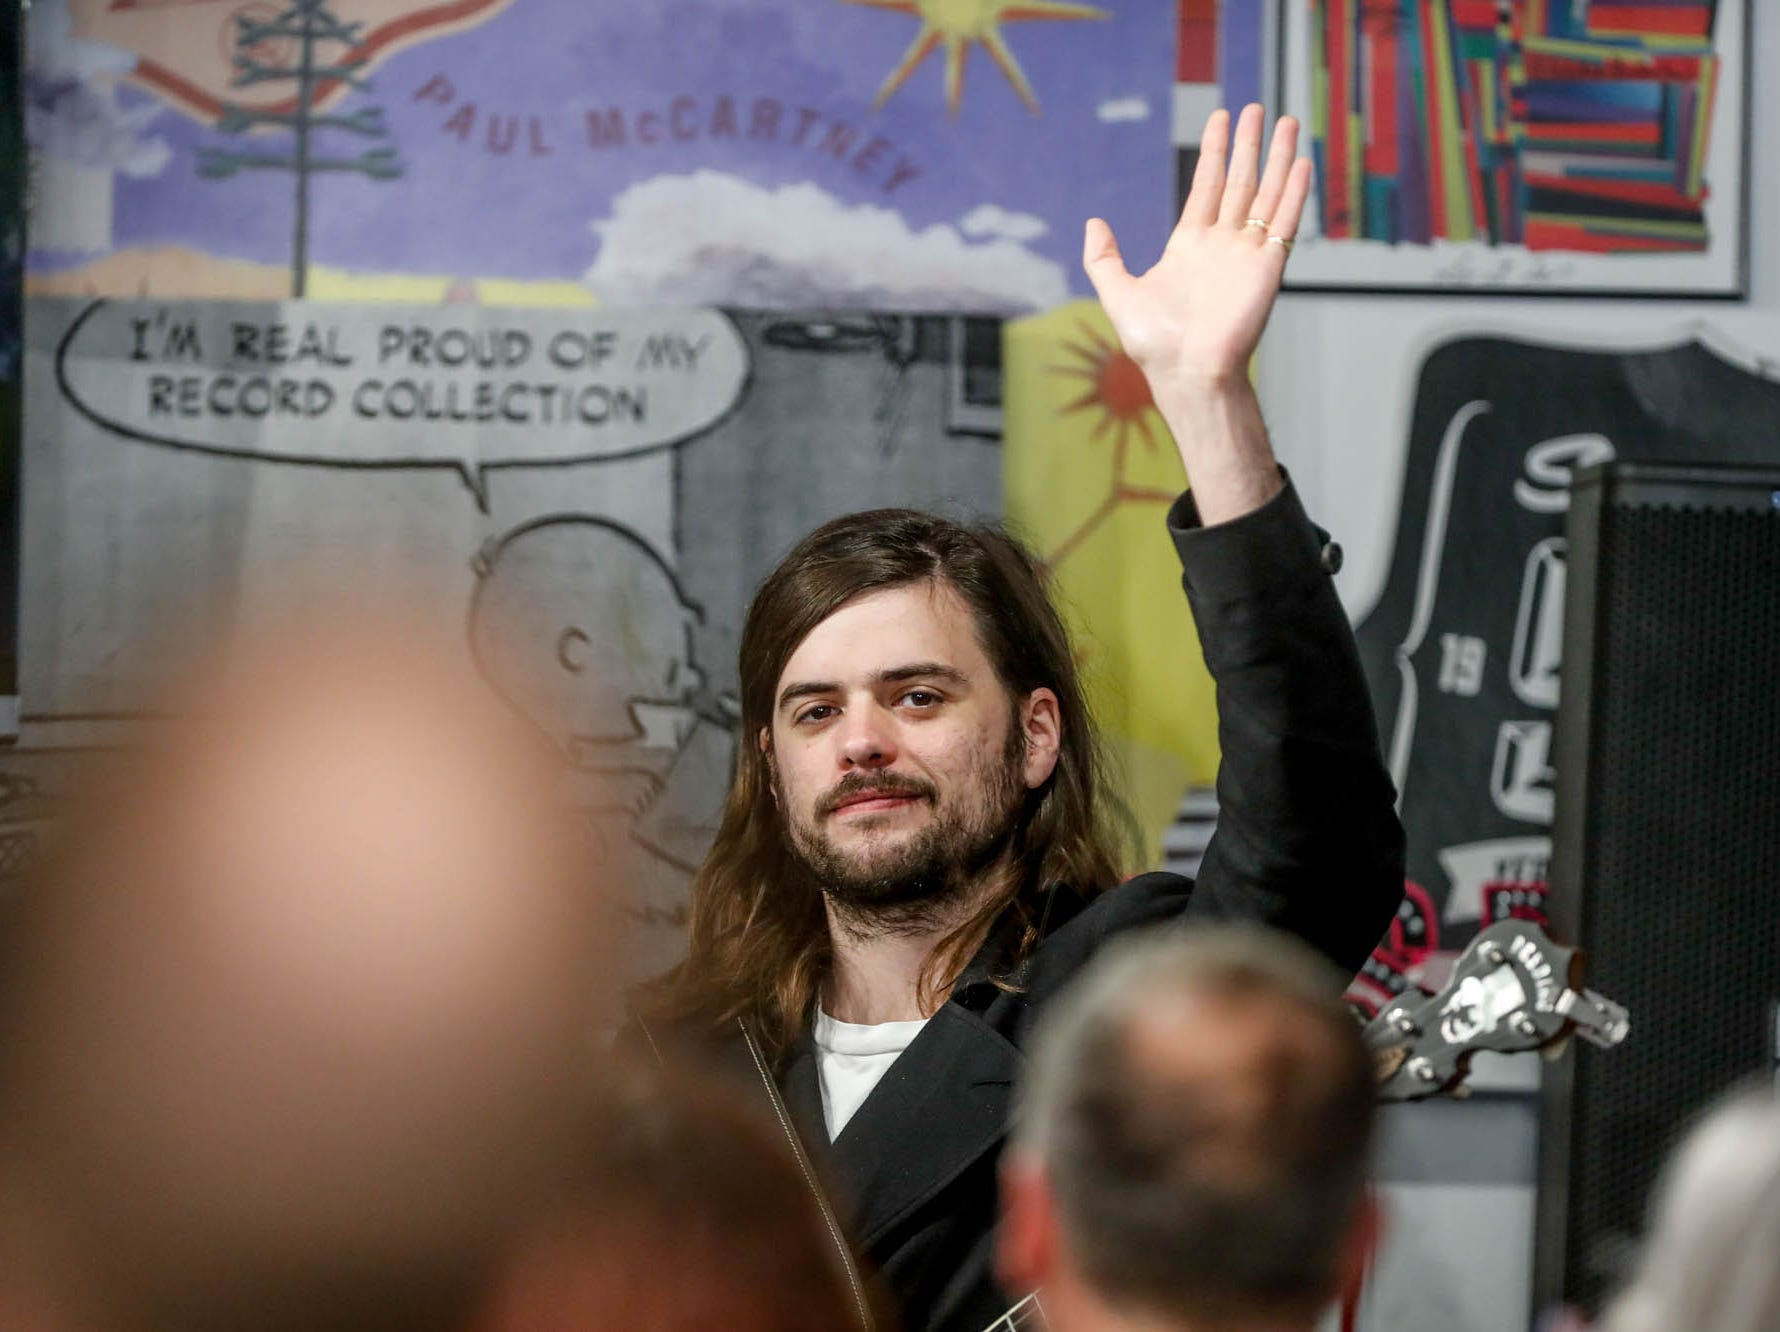 Mumford & Sons band member, Winston Marshall, waves to the fans during a special in-store appearance at Indy CD & Vinyl on Monday, March 25, 2019.